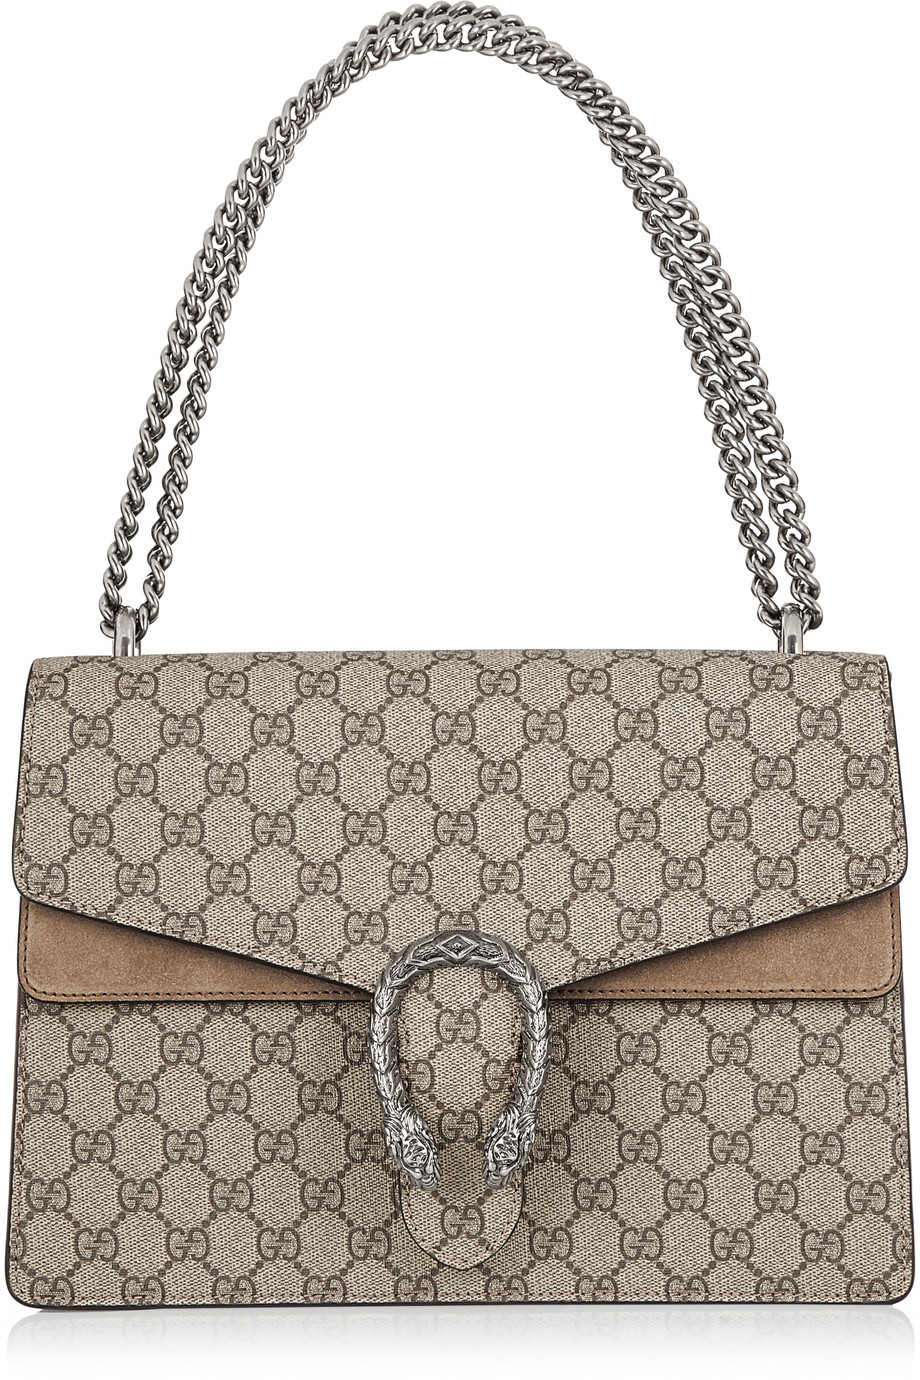 Gucci Dionysus Coated Canvas and Suede Shoulder Bag, Women's